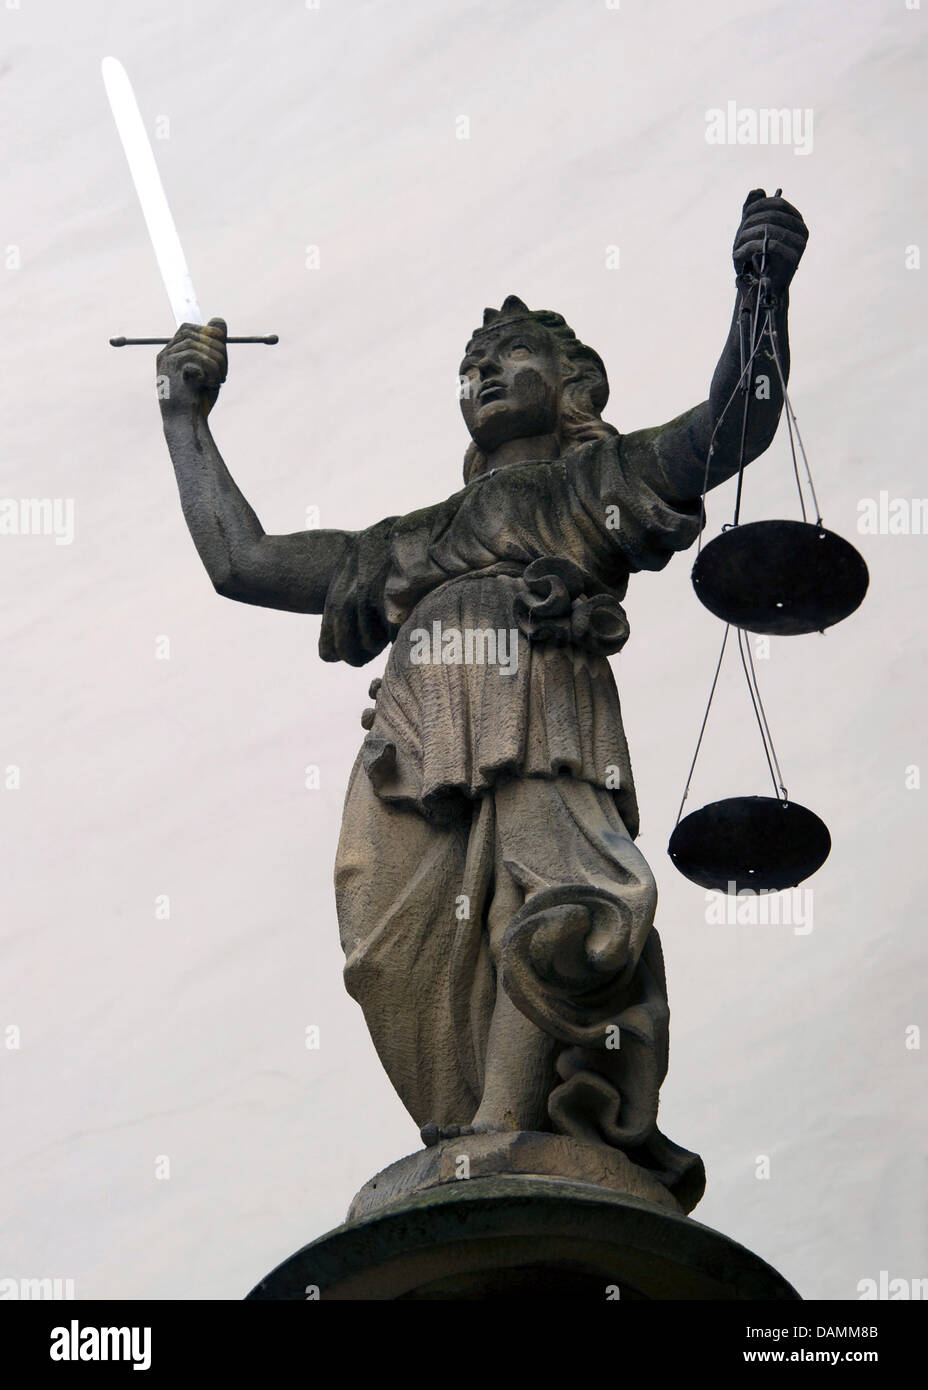 Justitia from 1591 stands at the entrance of the court wind at the city hall in Goerlitz, Germany, 21 June 2011. - Stock Image